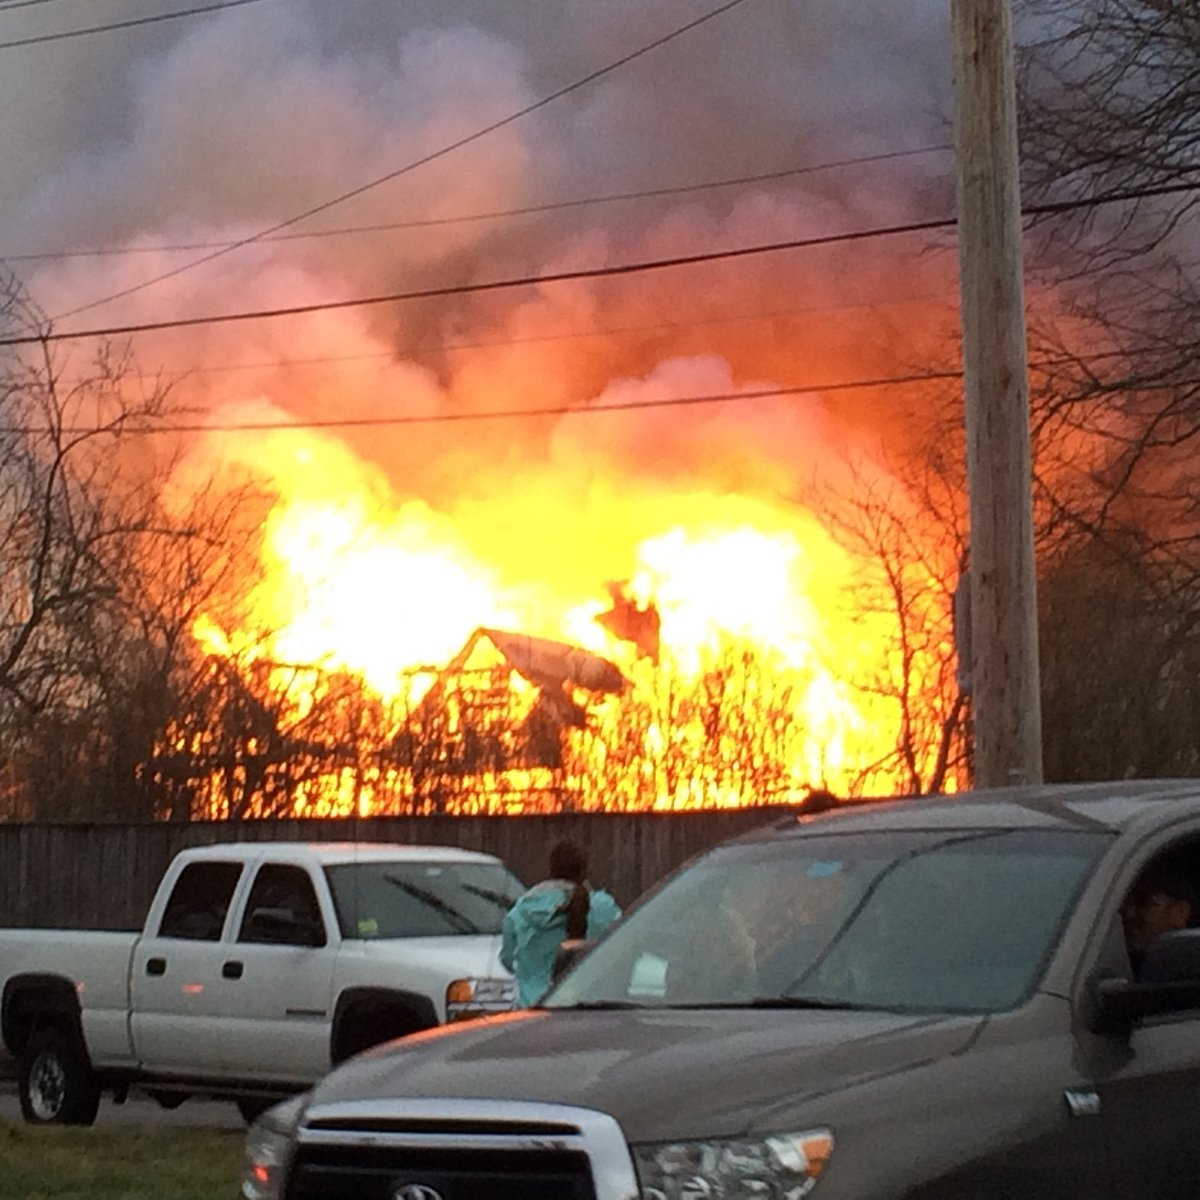 #BREAKING Another pic just sent into our newsroom of what appears to be a massive fire in Newport @wpri12 https://t.co/kFoUHlUAyA